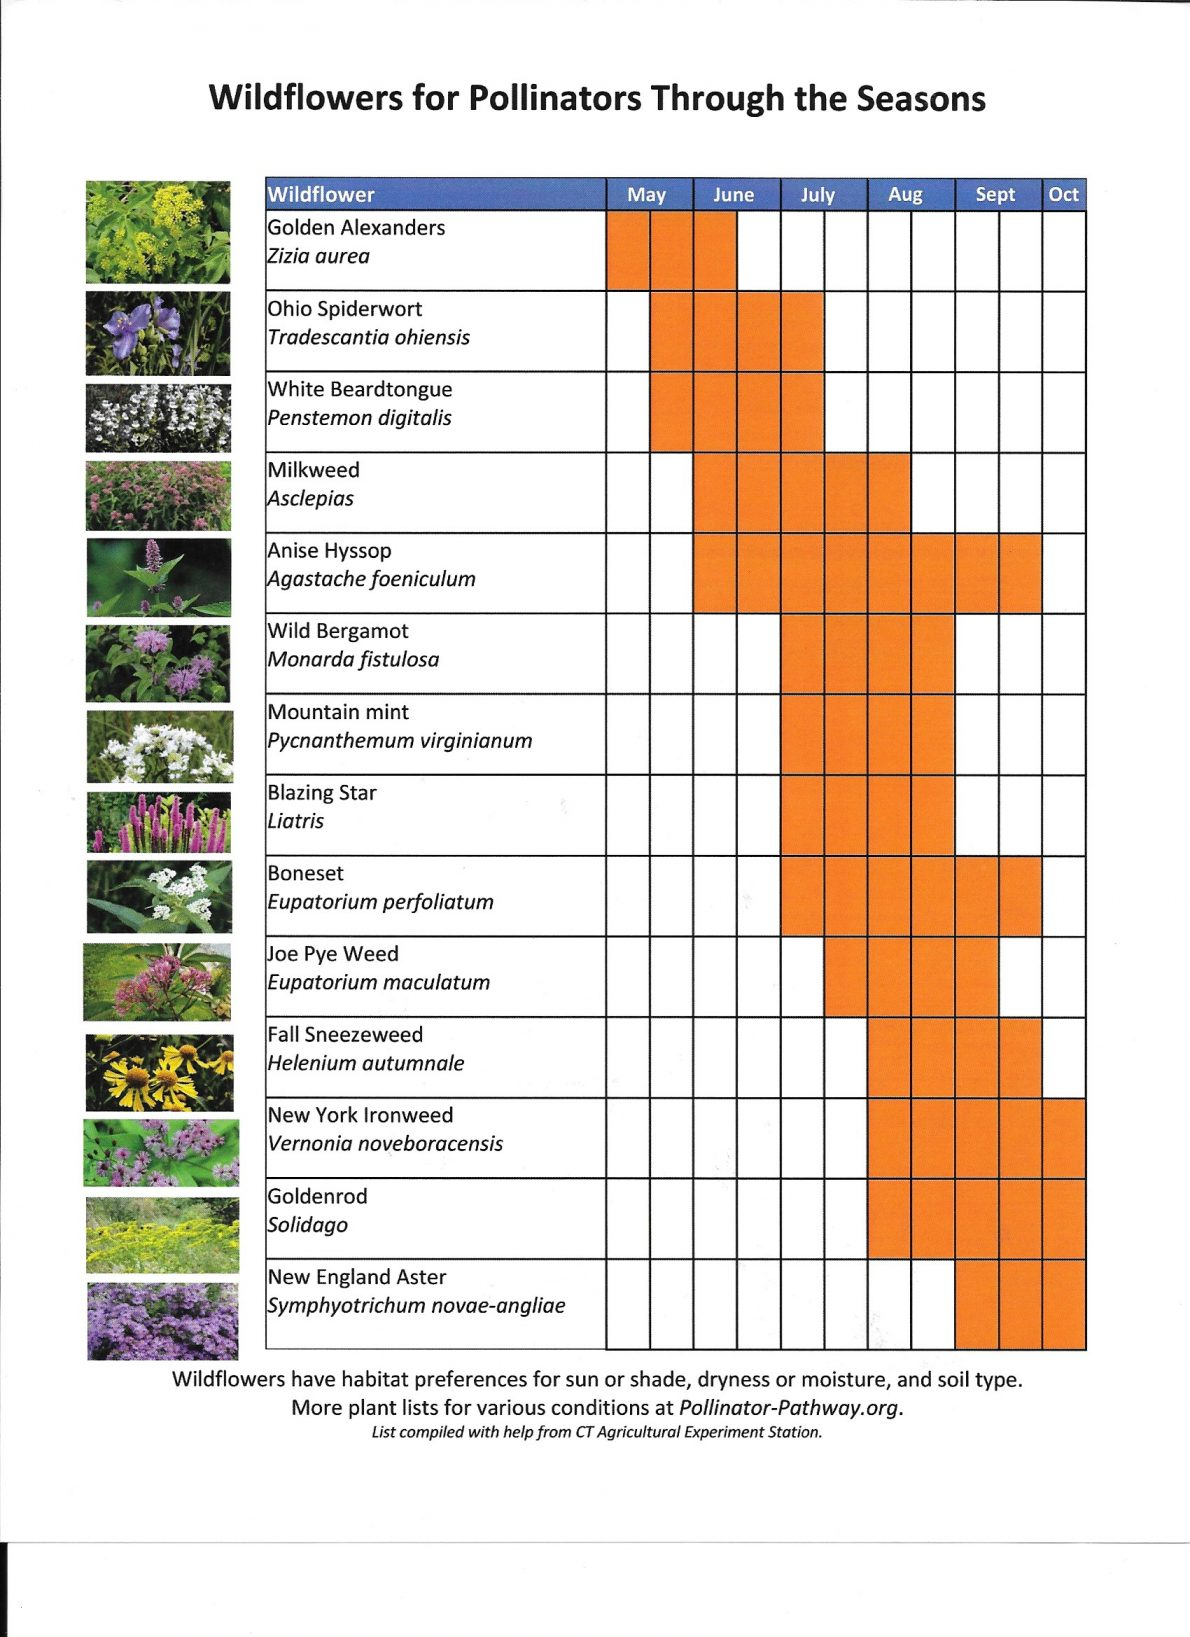 Wildflowers for Pollinators with Blooming Seasons